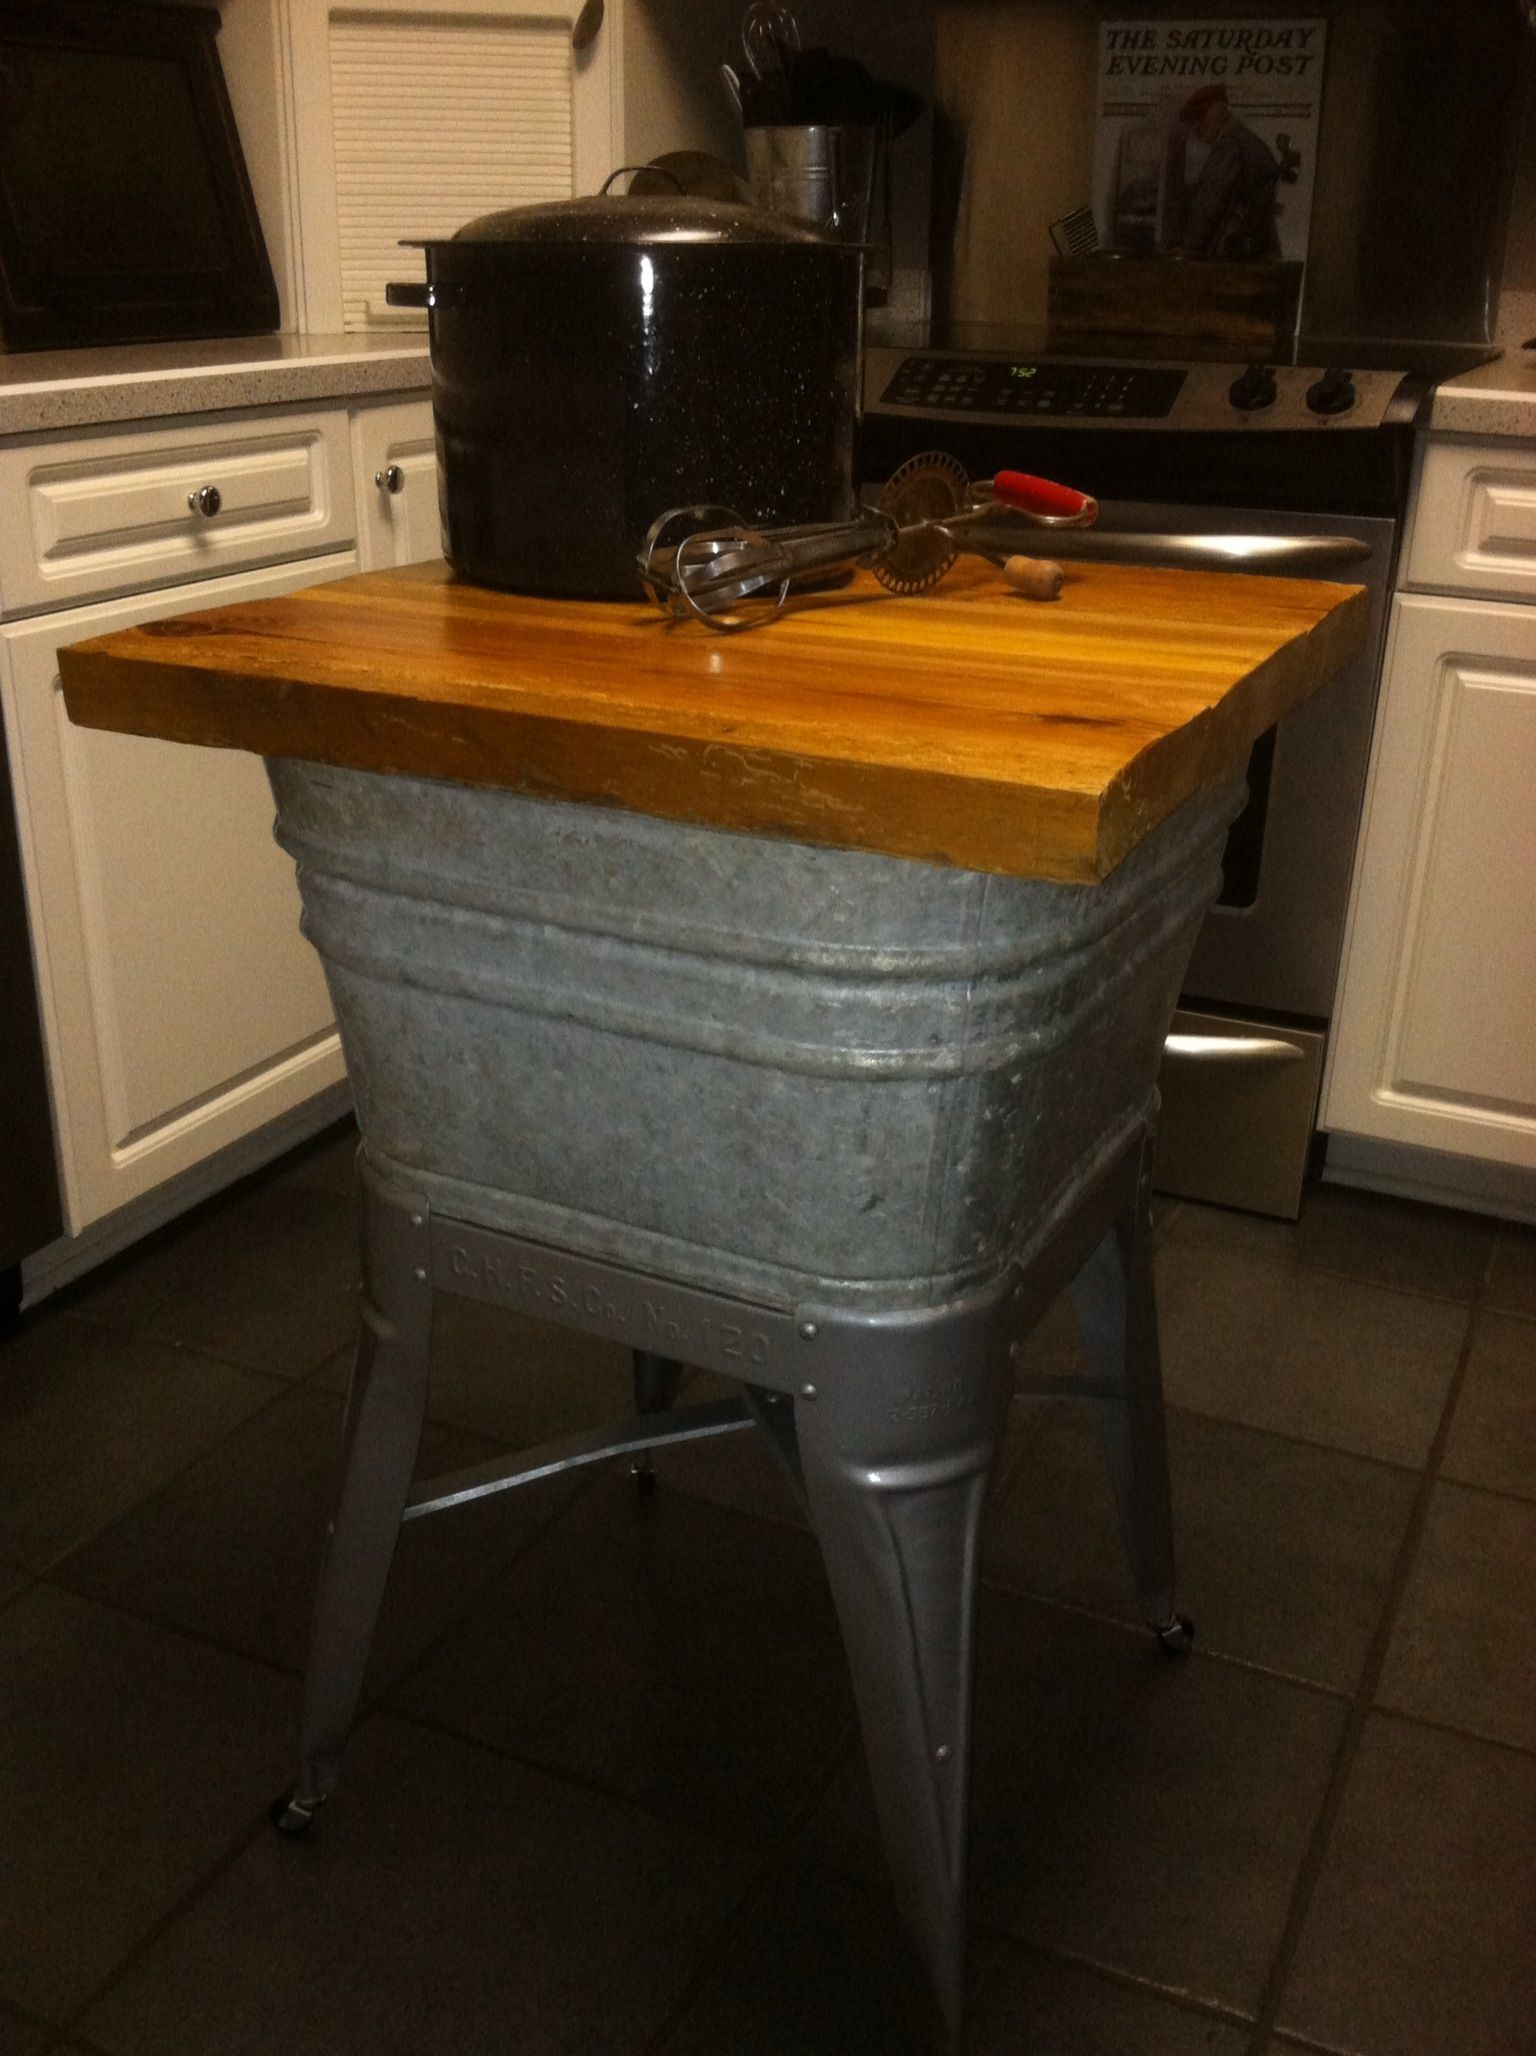 Old galvanized wash tub turned repurposed into kitchen for Galvanized tub kitchen sink